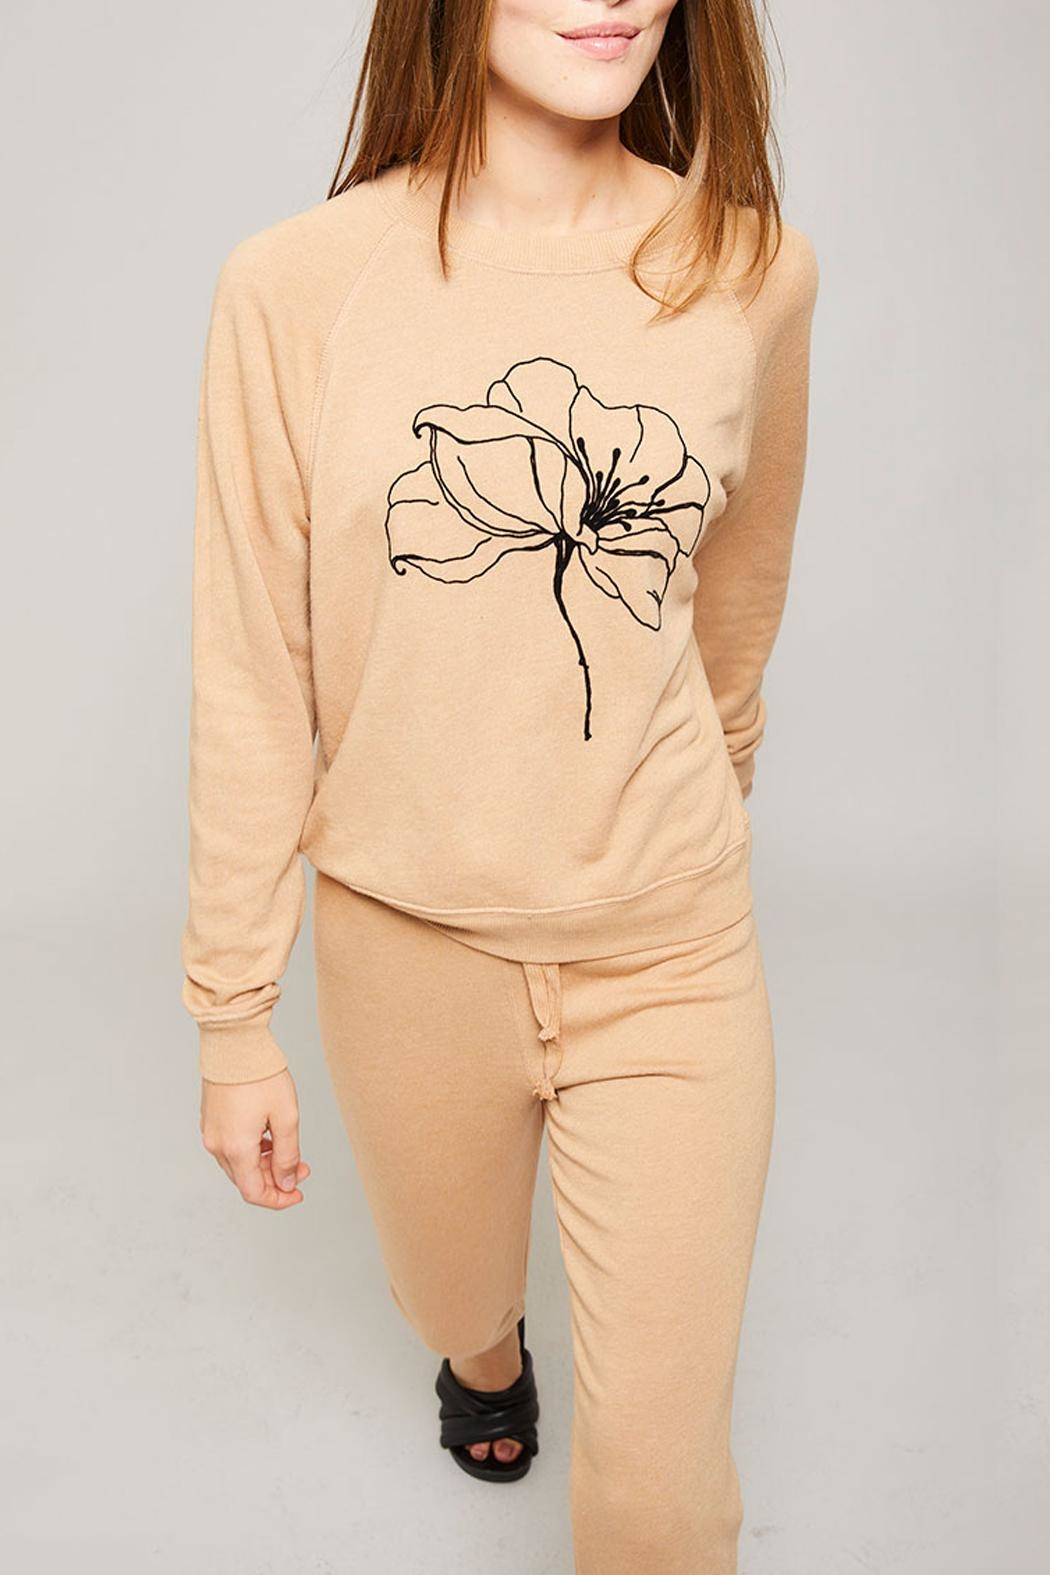 All Things Fabulous Poppy Favorite Sweatshirt - Front Full Image